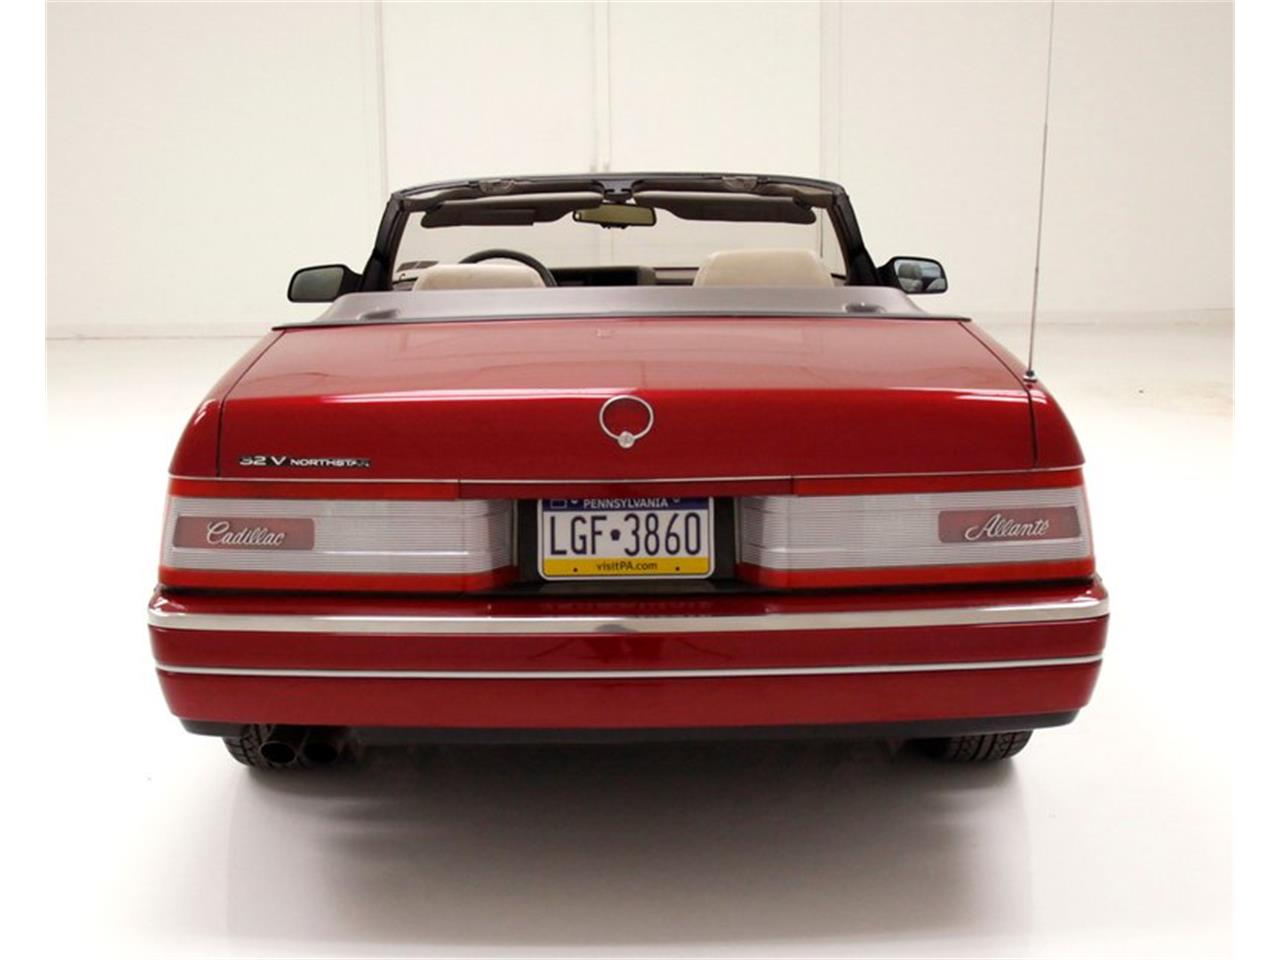 1993 Cadillac Allante (CC-1392300) for sale in Morgantown, Pennsylvania